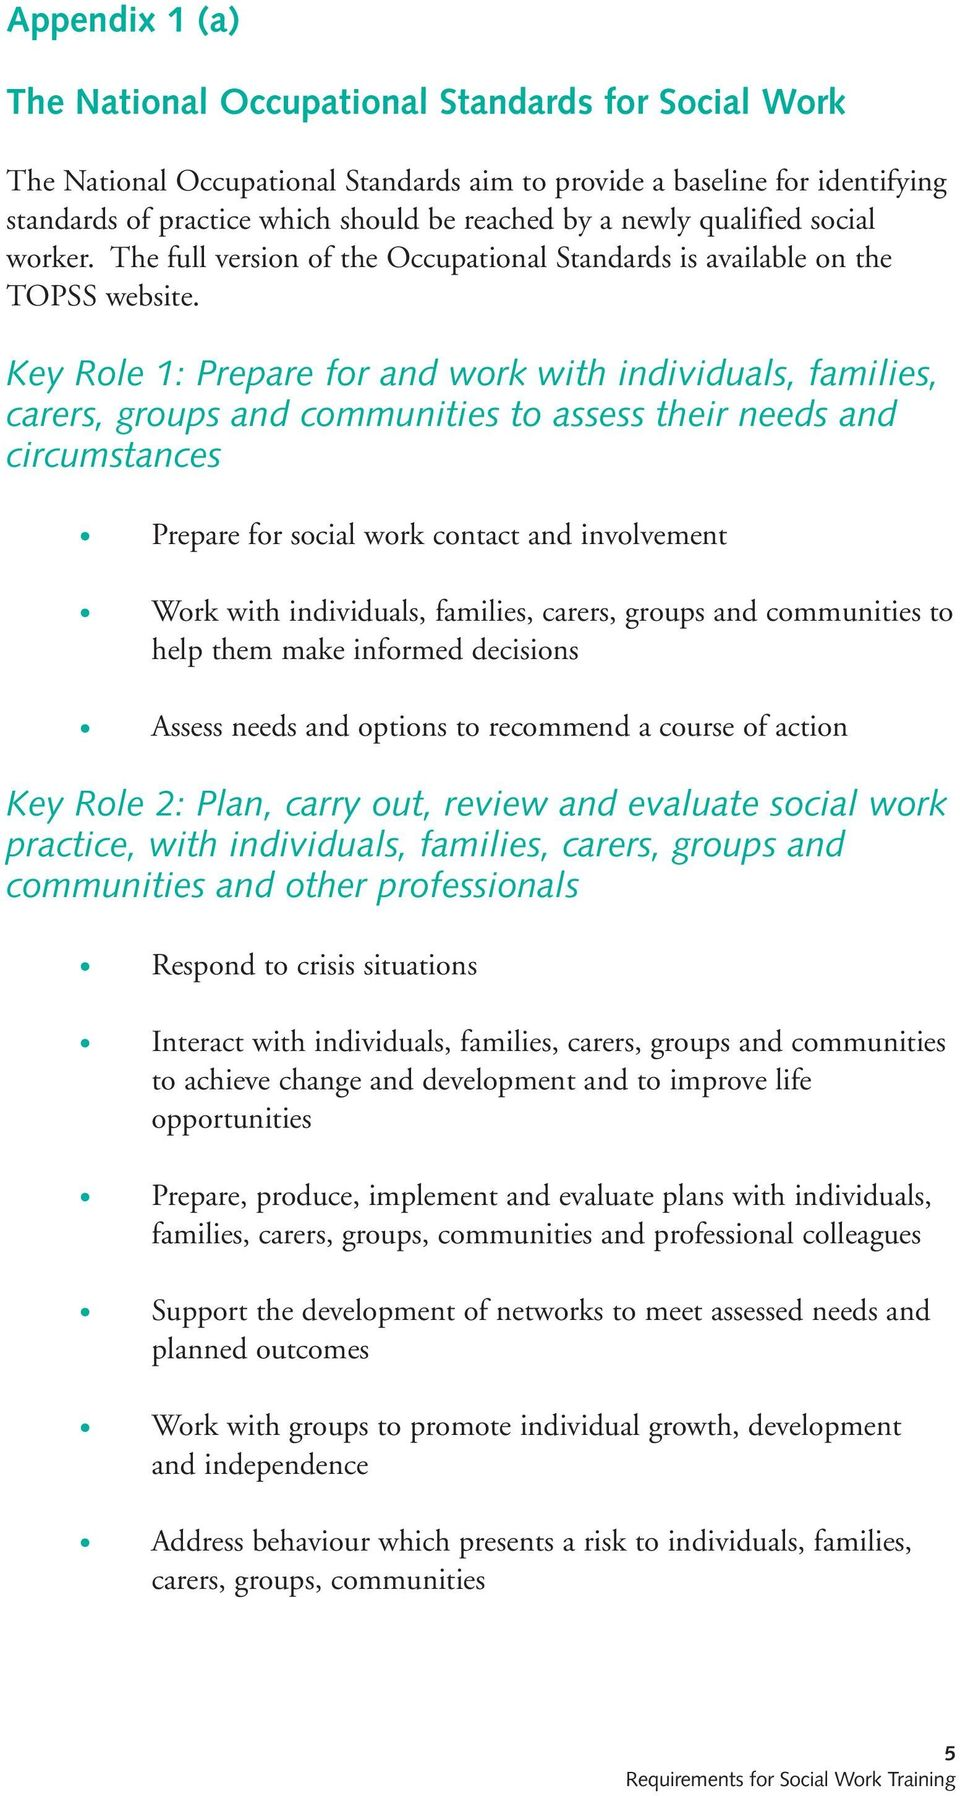 Key Role 1: Prepare for and work with individuals, families, carers, groups and communities to assess their needs and circumstances Prepare for social work contact and involvement Work with